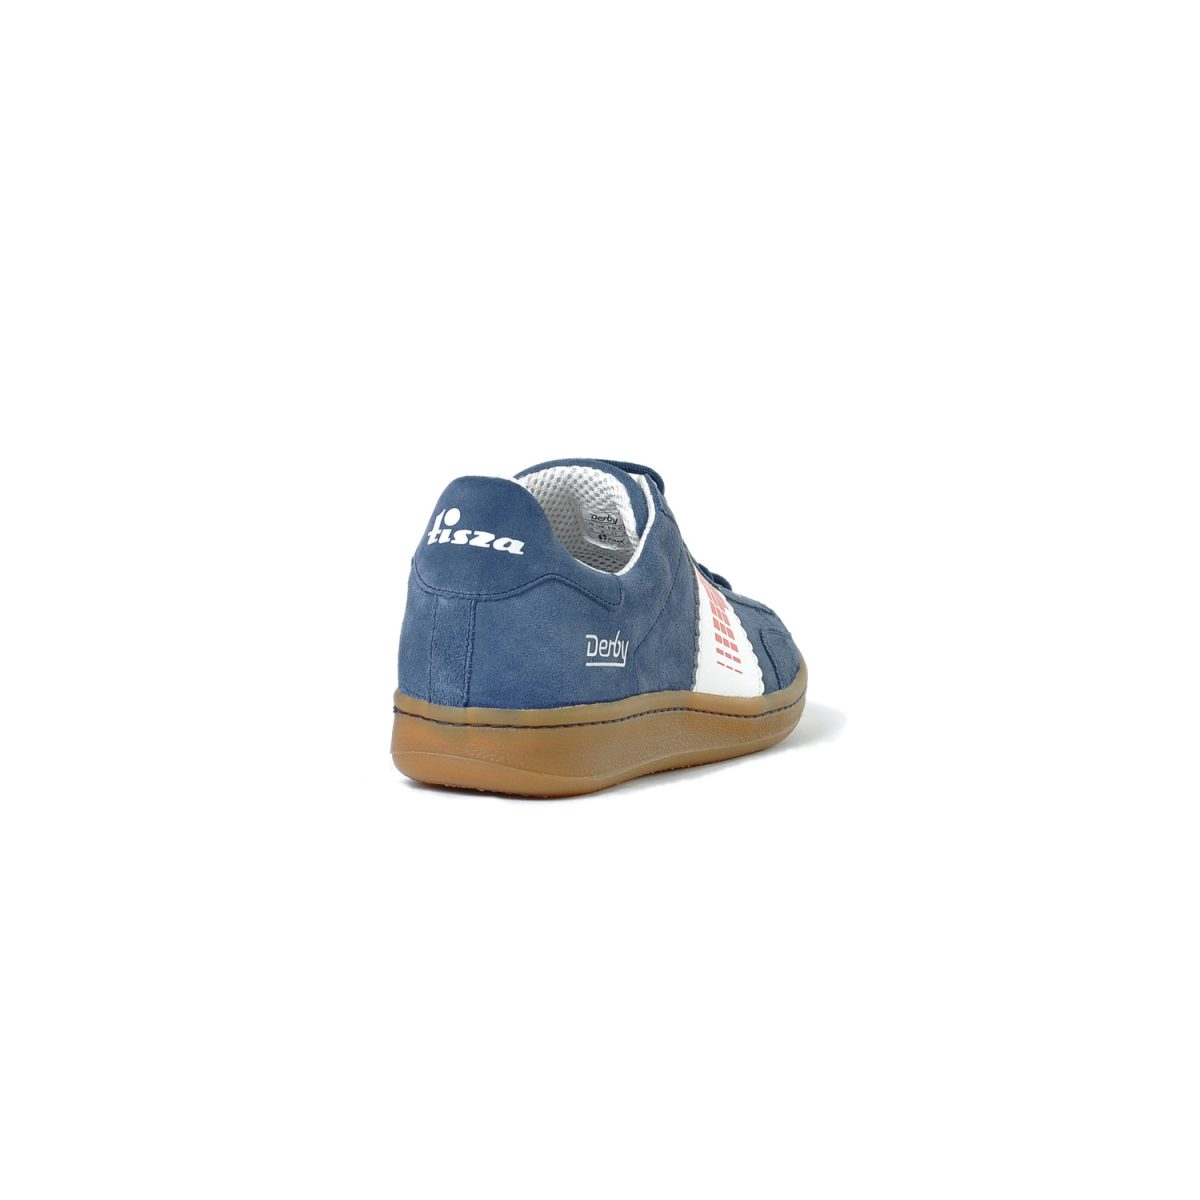 Tisza shoes - Derby - Navy-white